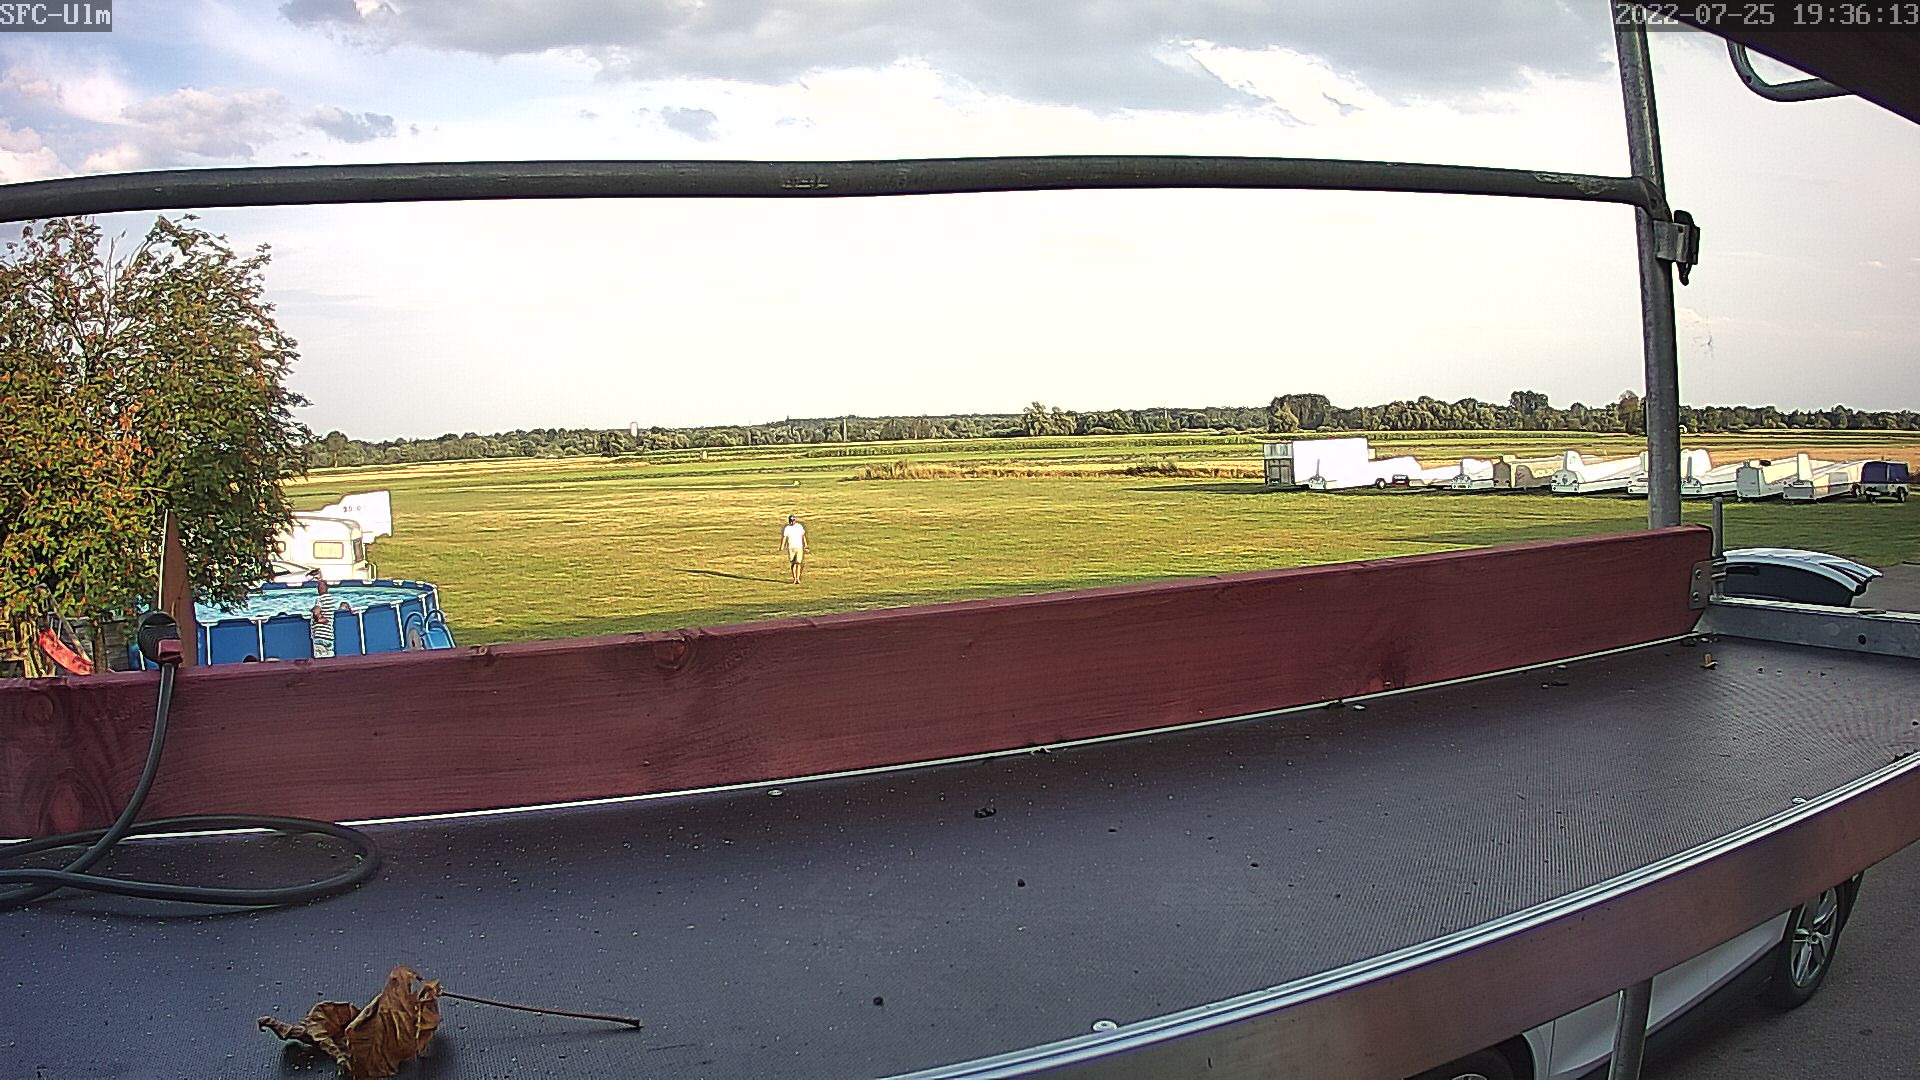 WebCam SFC-Ulm